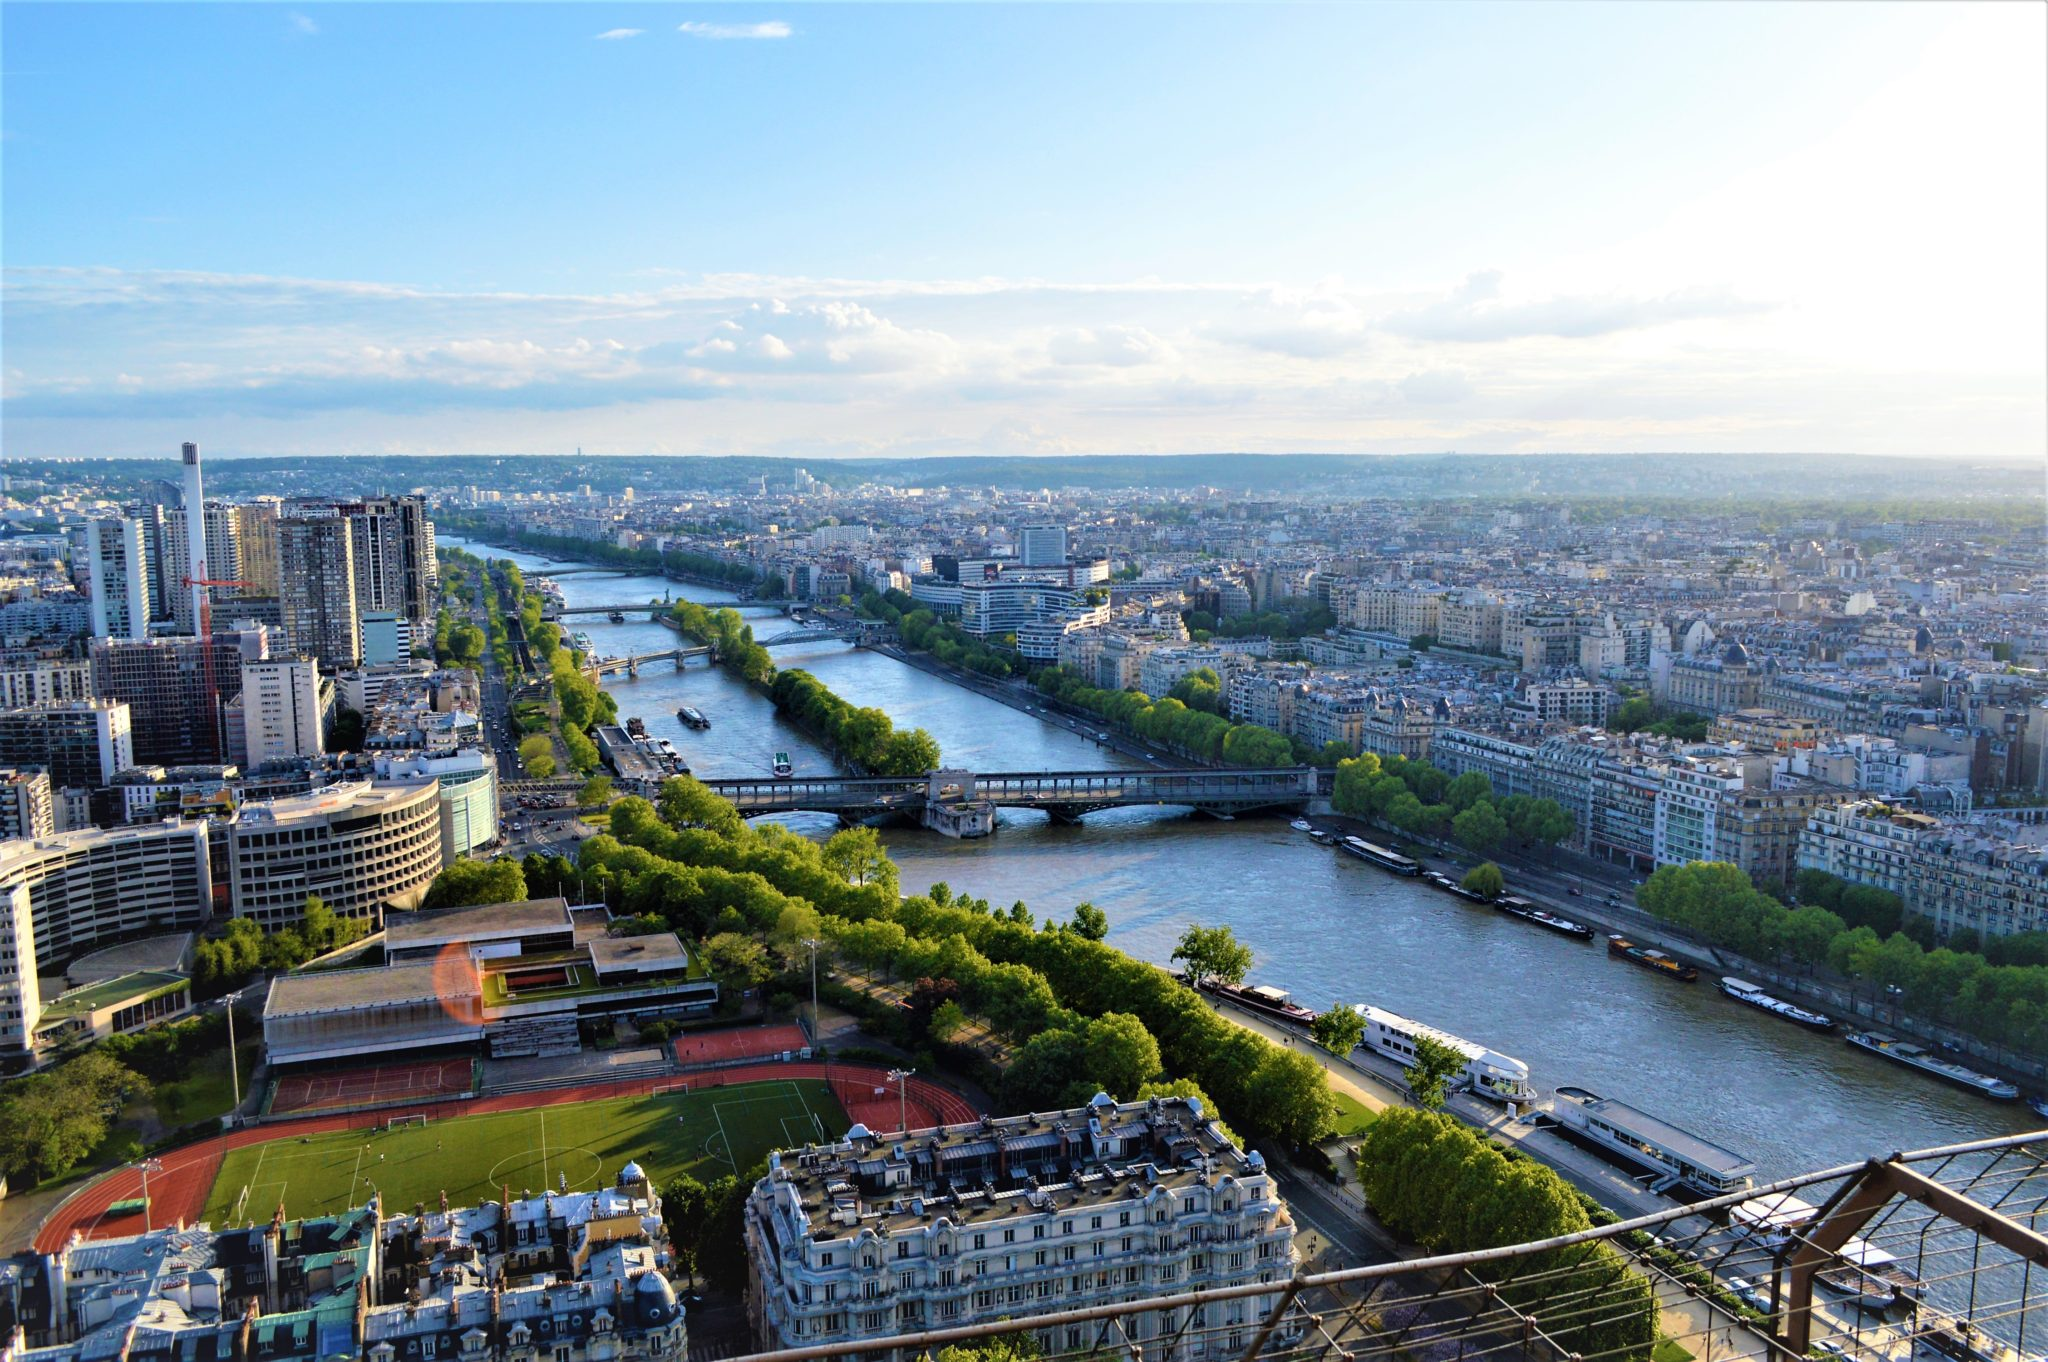 View of Sienne River from Eiffel Tower, Paris